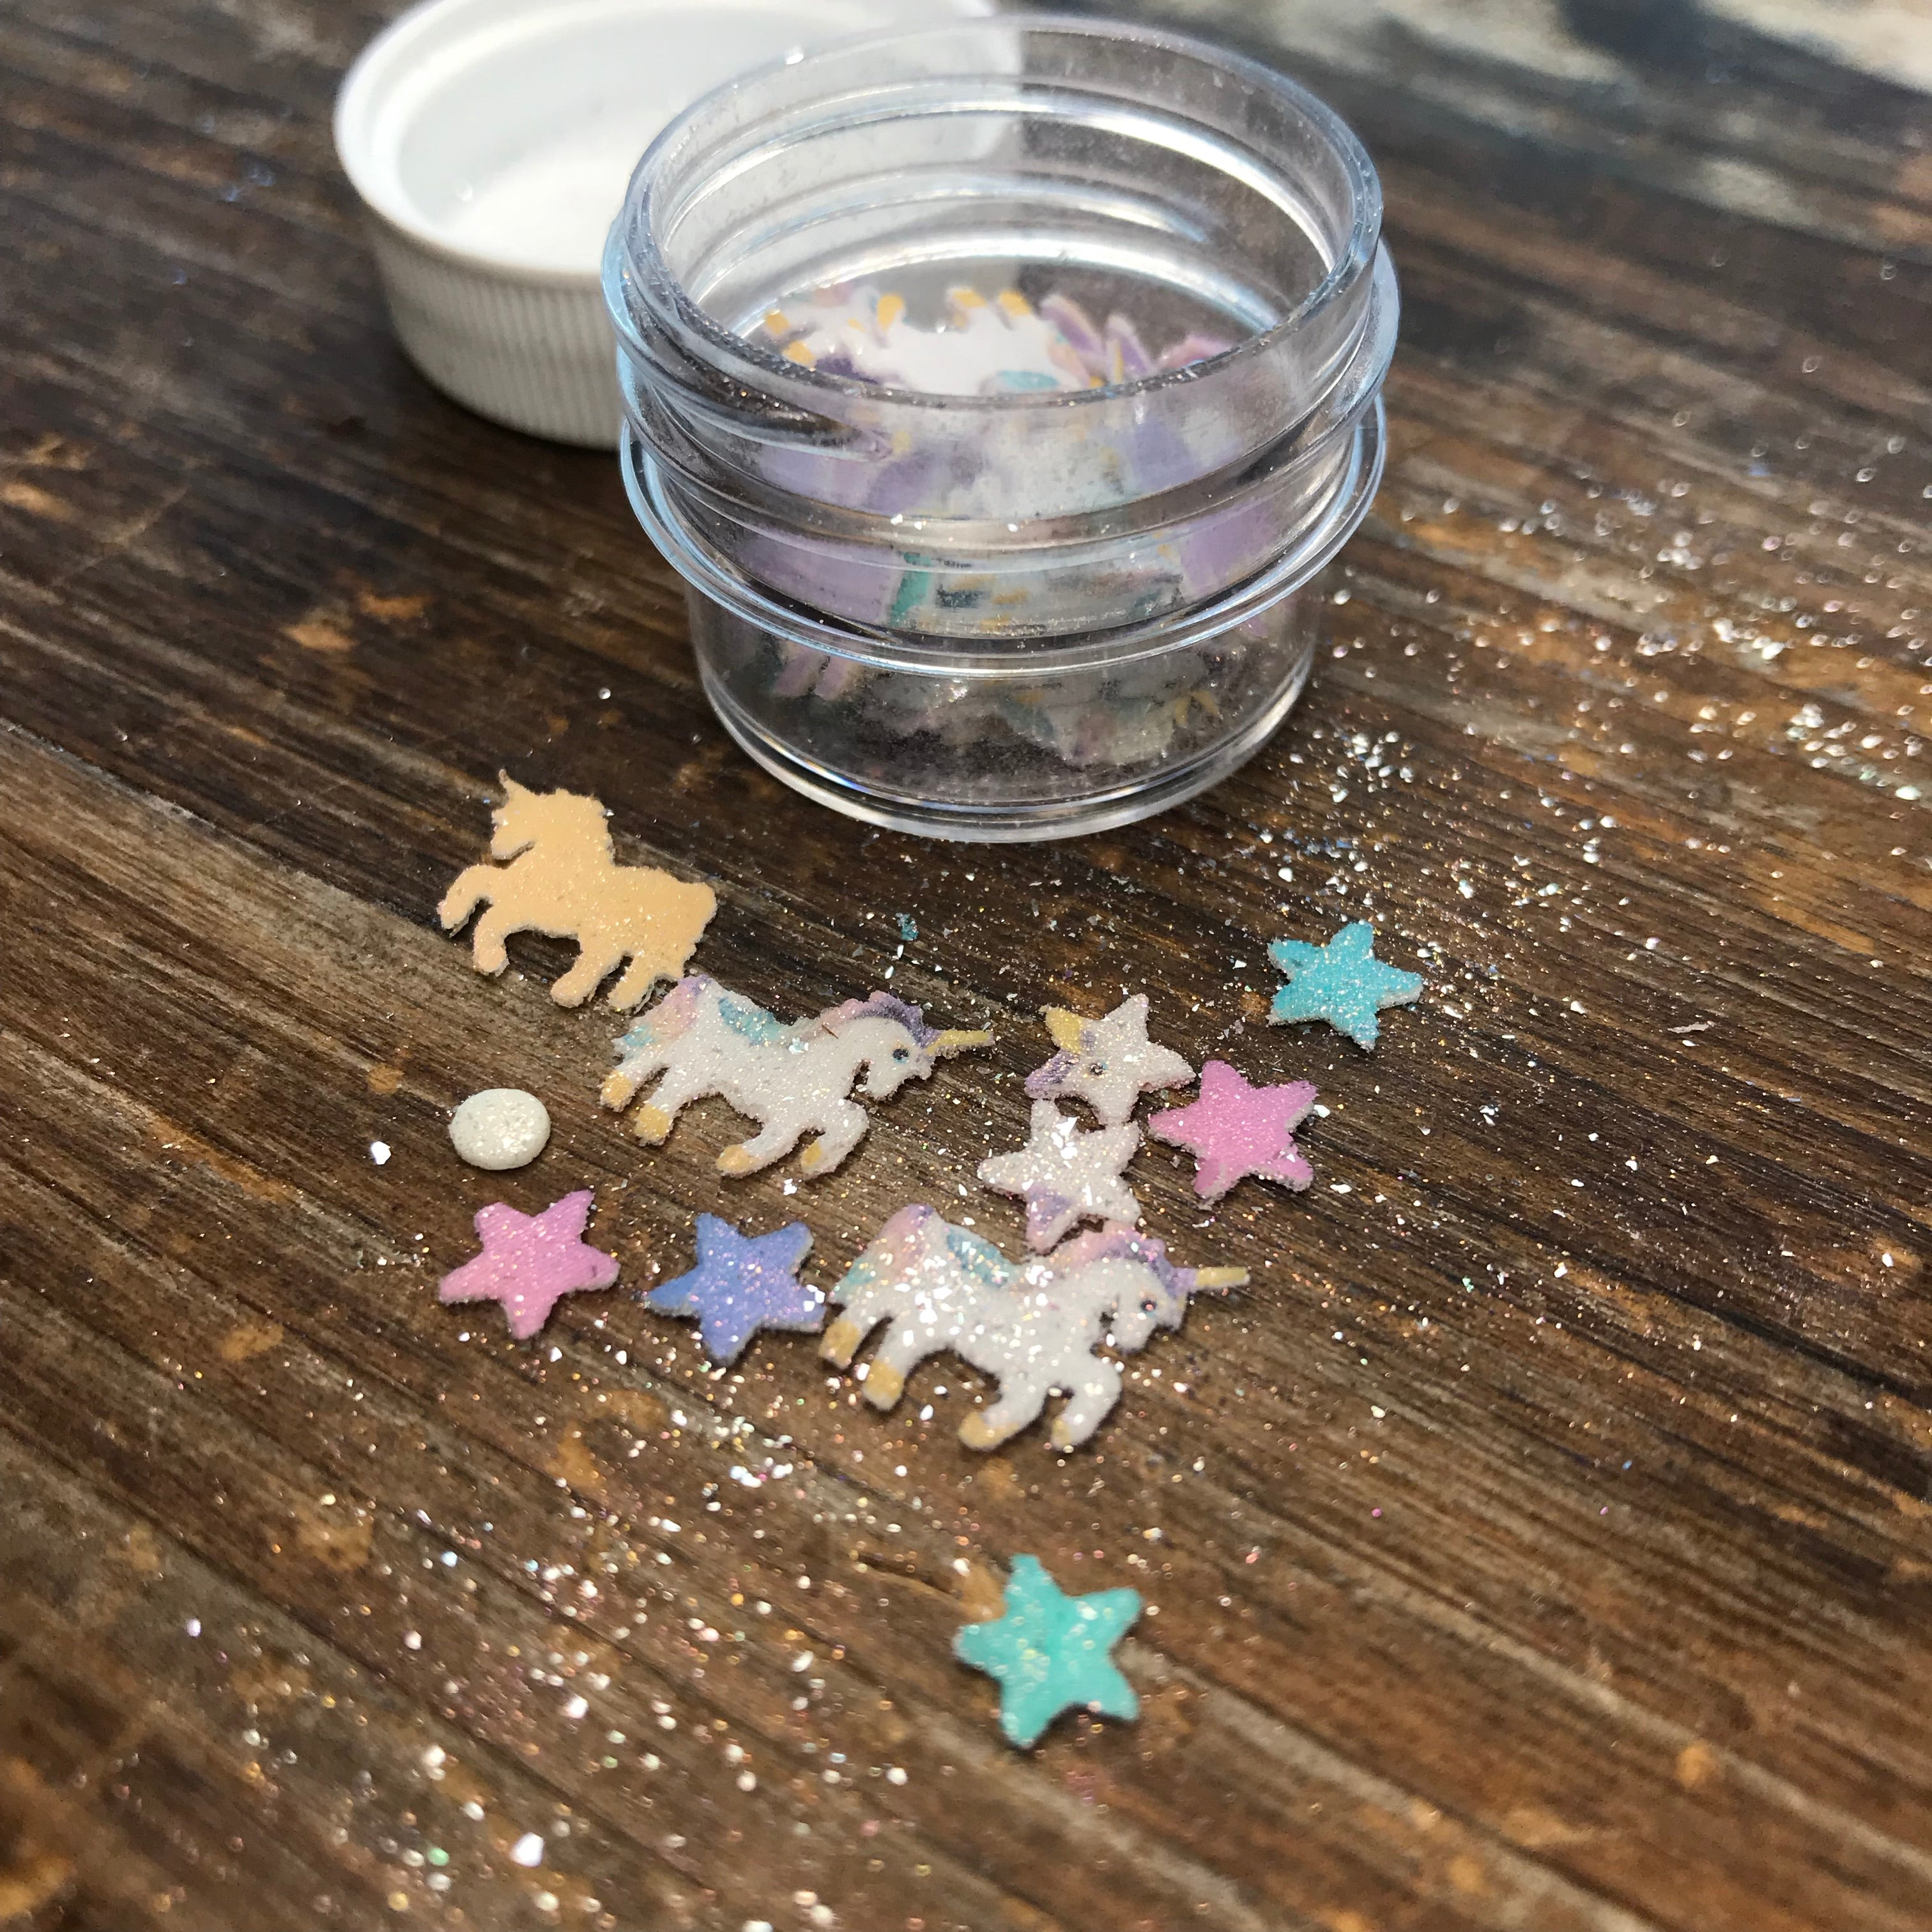 Edible Unicorn & Star Glitter Fun Food Sprinkles© by Never Forgotten Designs